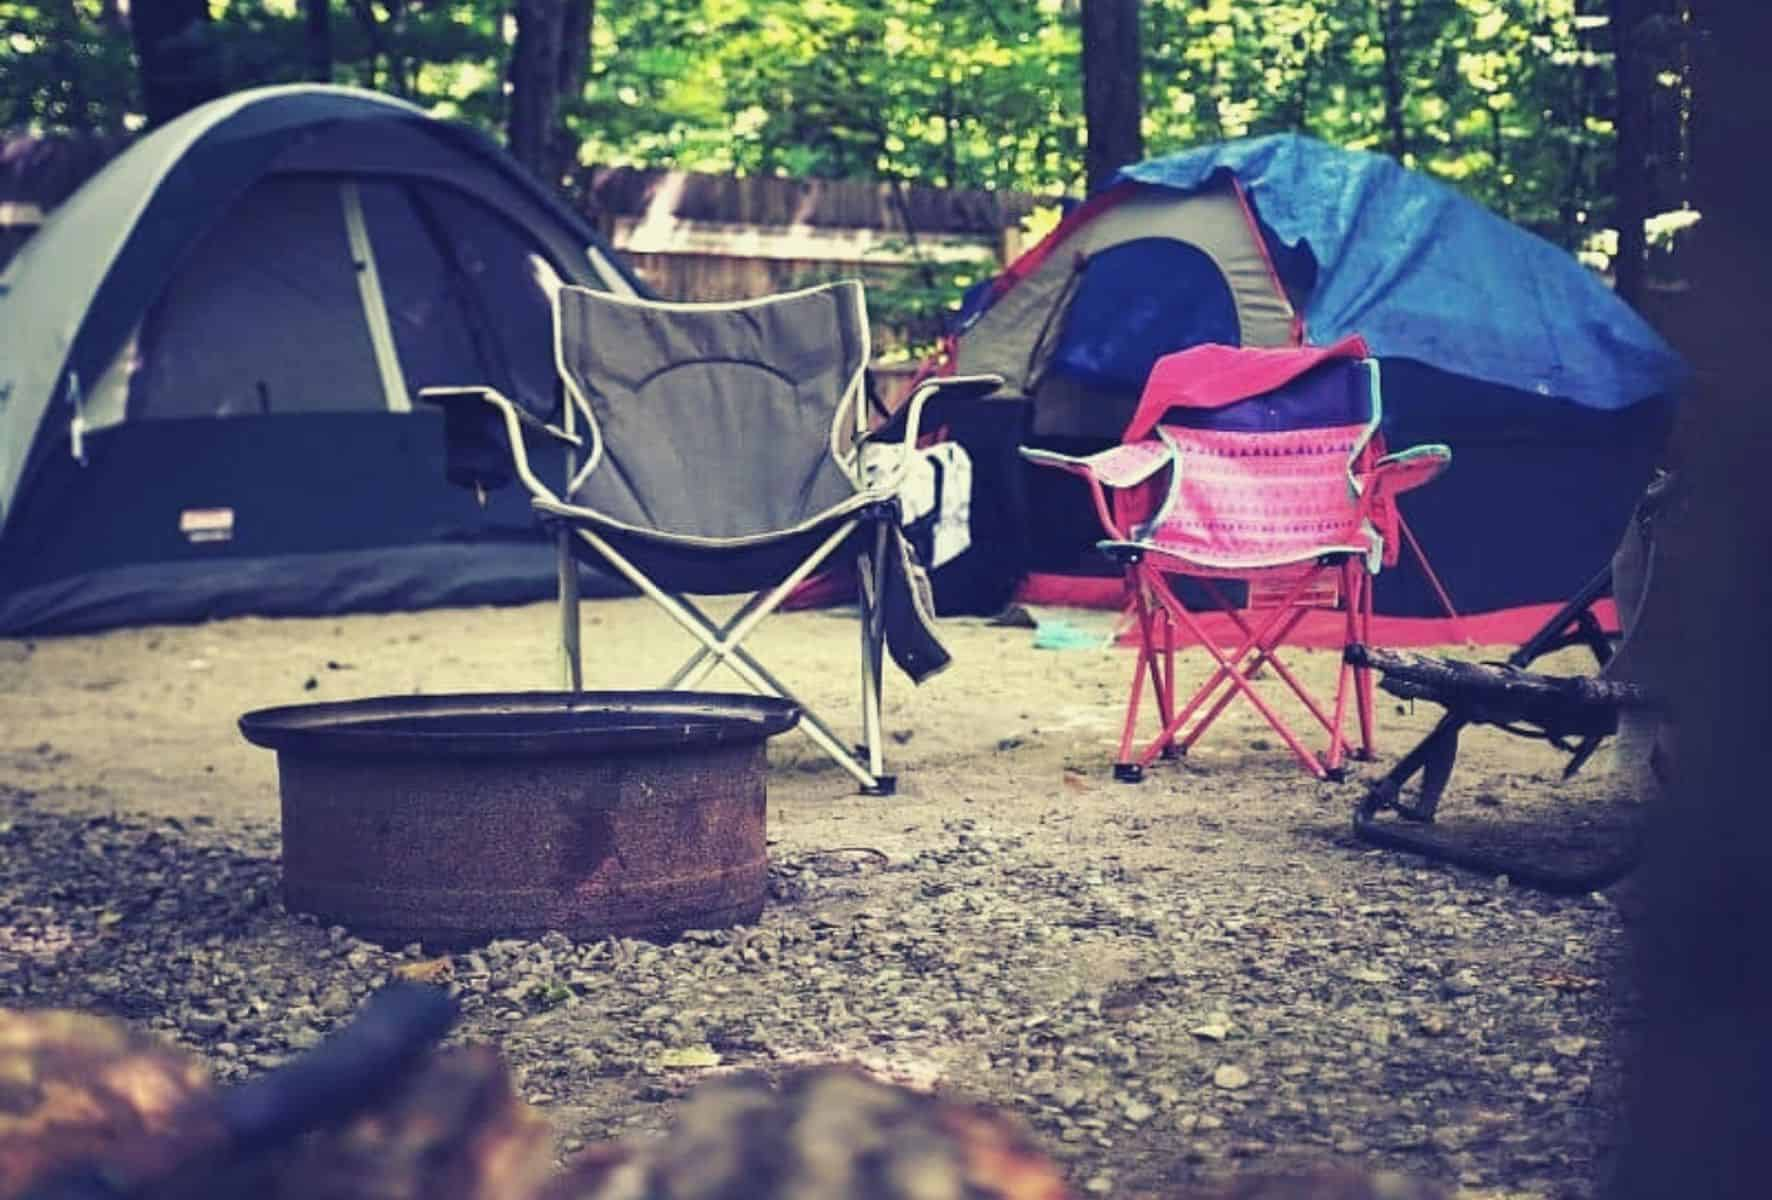 Campsite setup with tents and chairs and fire